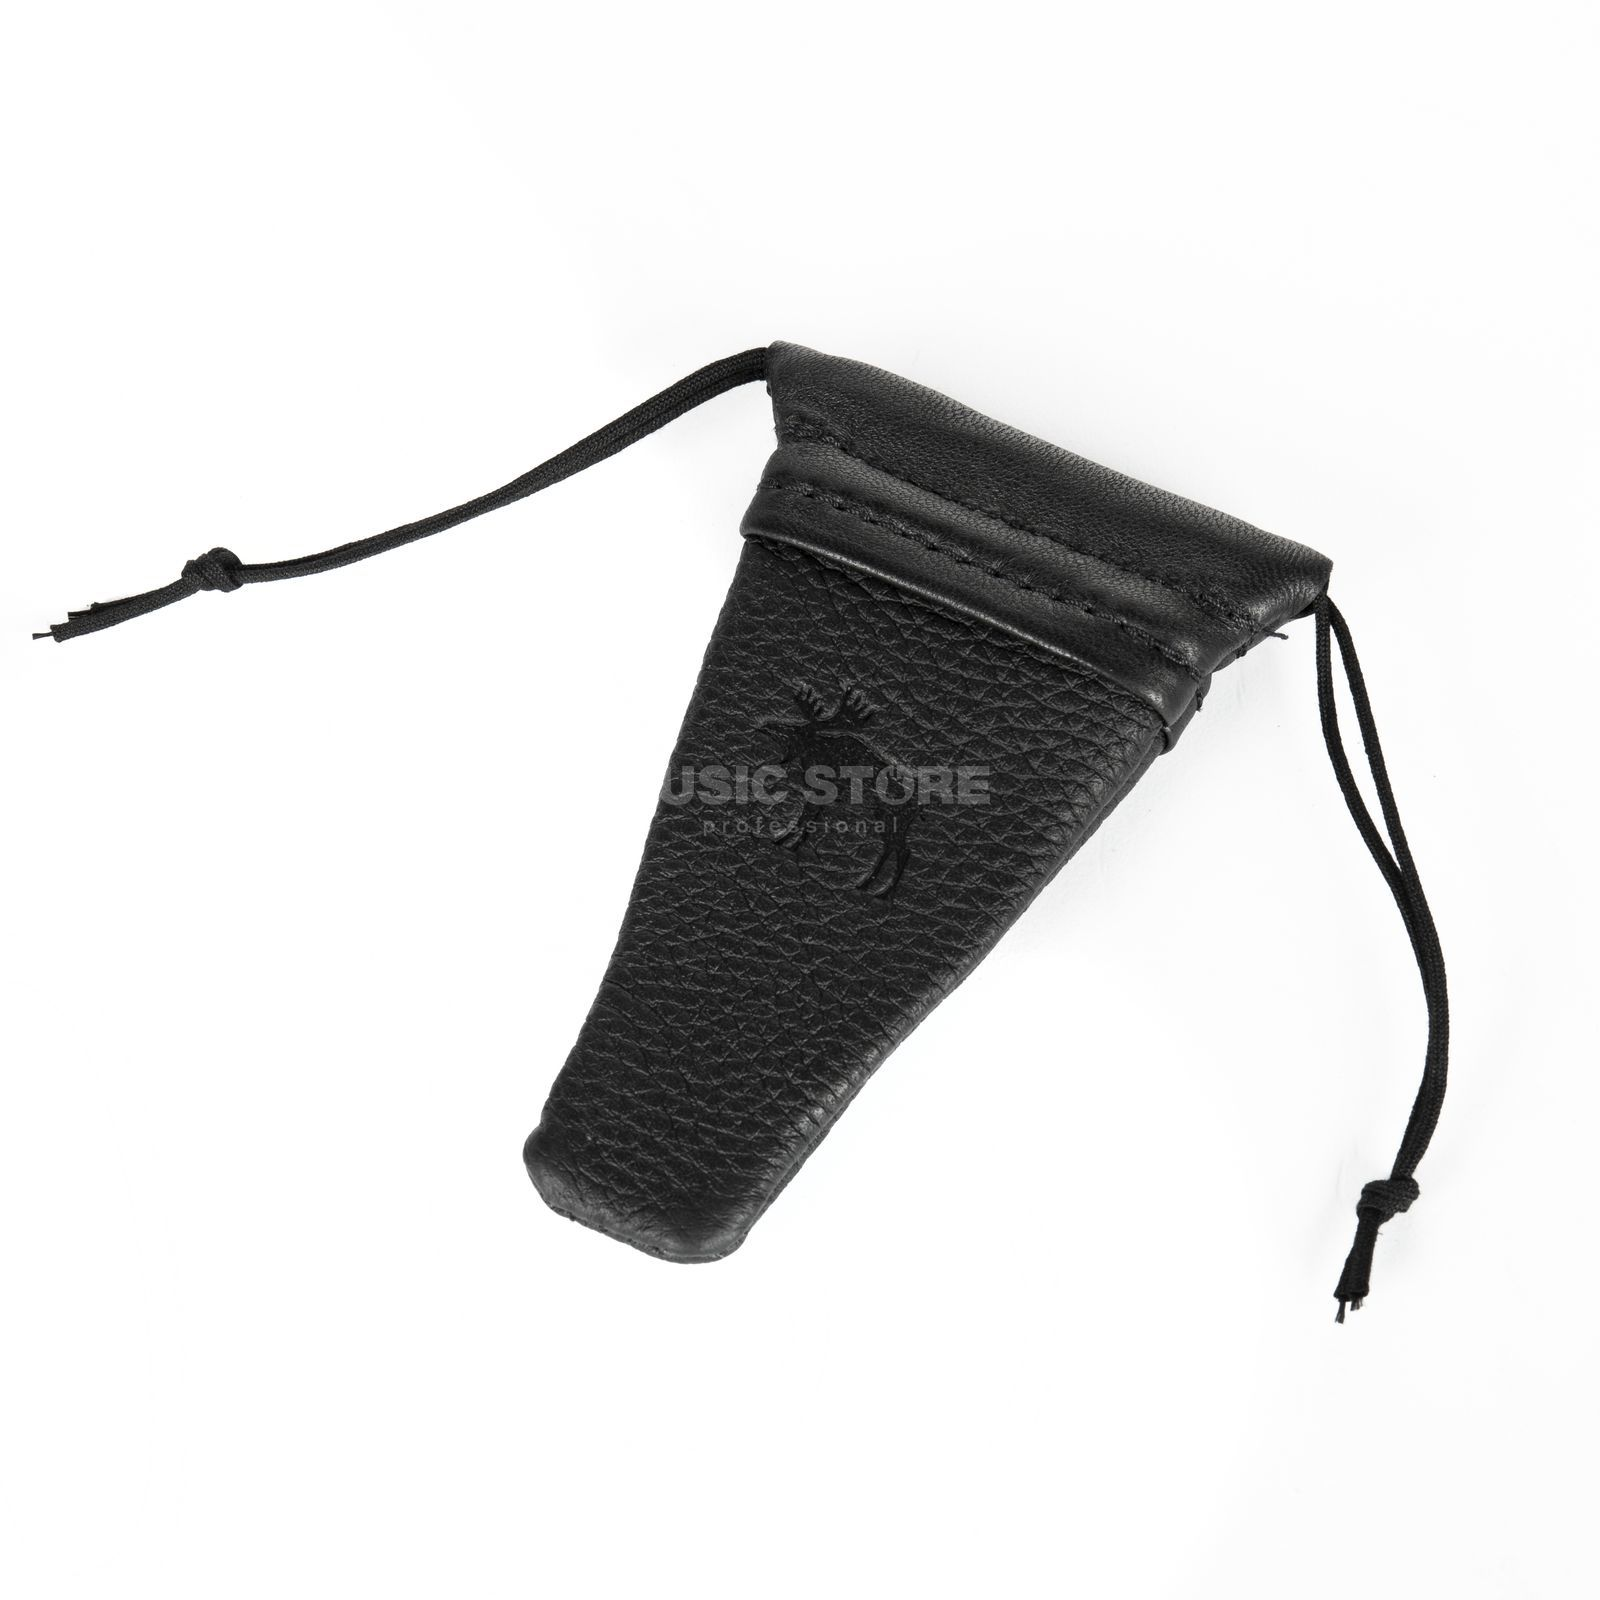 Monzani MM-12 Mouthpiece Bag Premium For Trombone Product Image